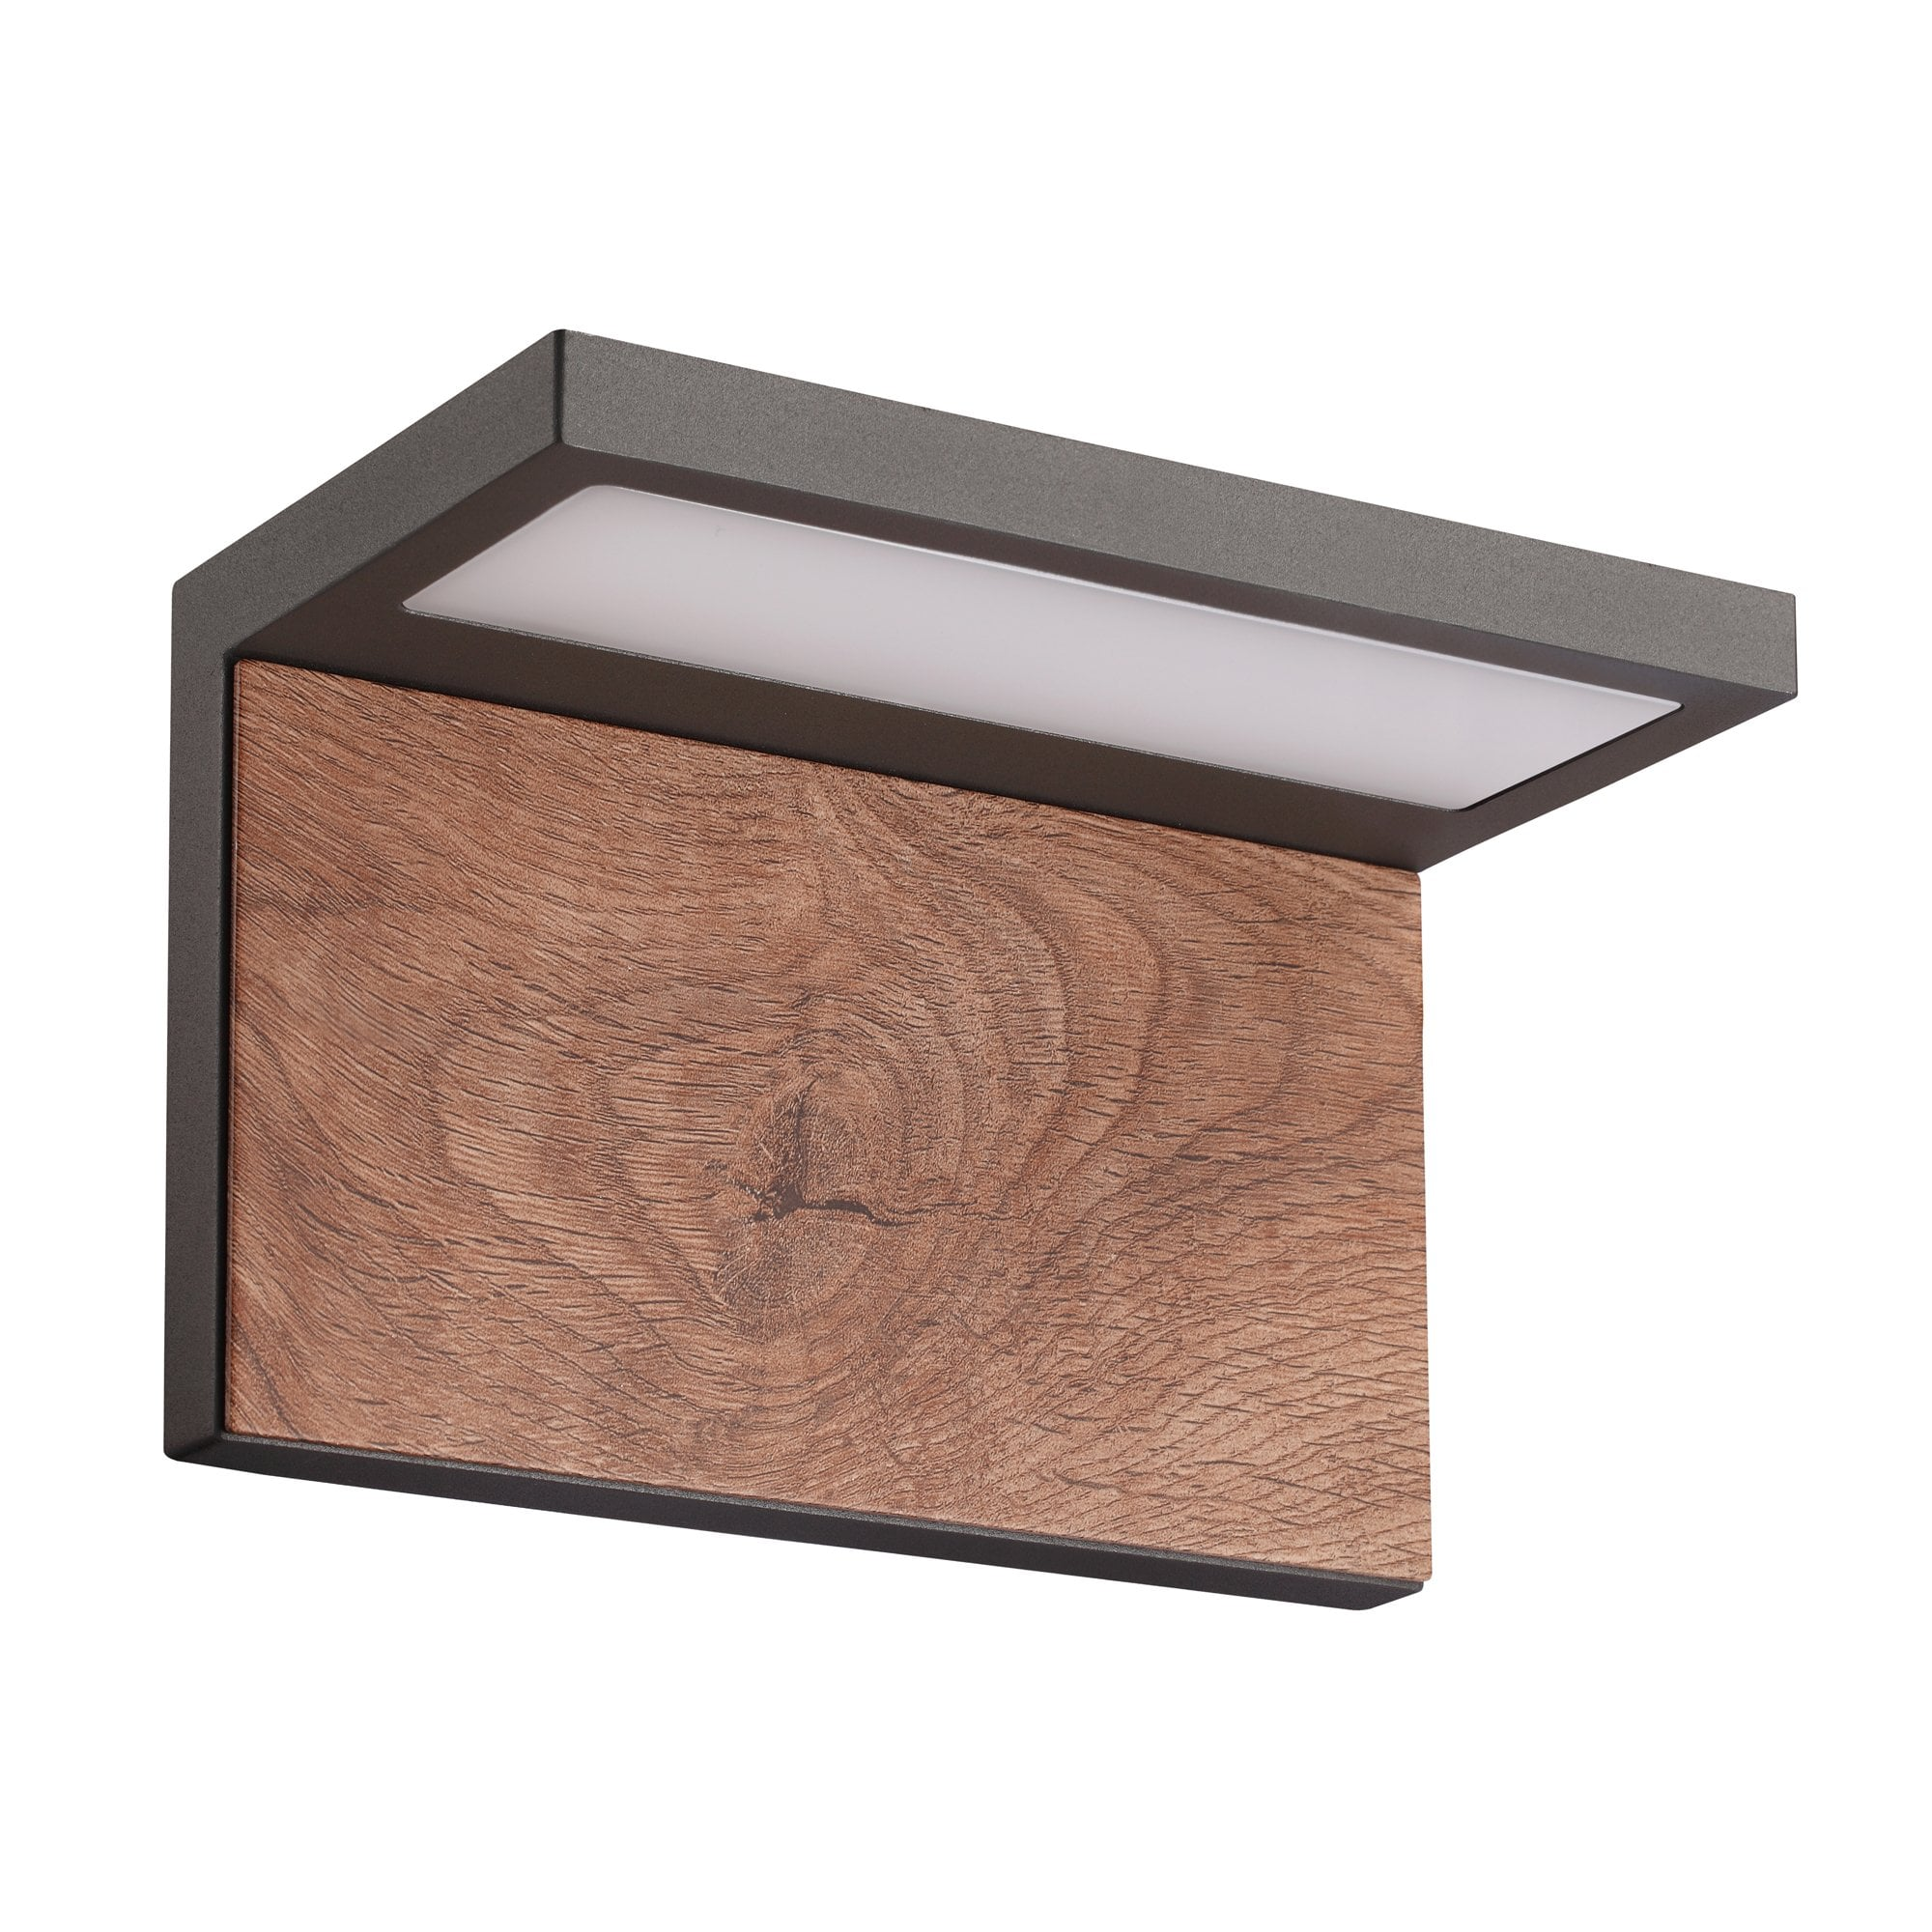 mantra lighting ruka modern outdoor wall light in anthracite and walnut finish ip54 m6770